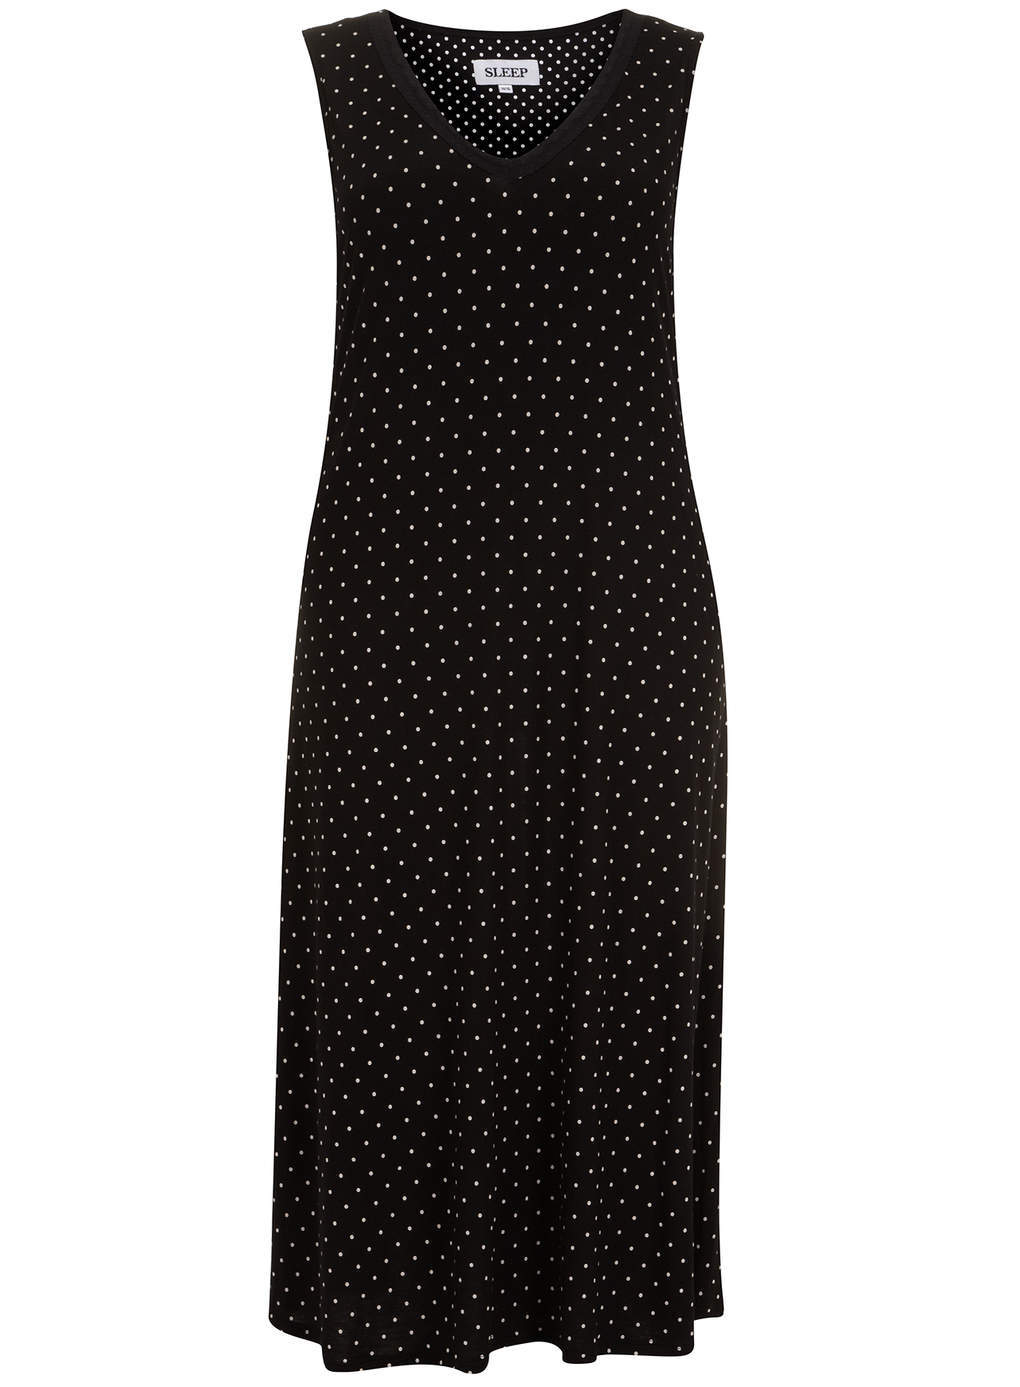 Black & White Polka Dot Long Nightdress - length: calf length; neckline: v-neck; sleeve style: sleeveless; style: maxi dress; pattern: polka dot; secondary colour: white; predominant colour: black; occasions: casual; fit: body skimming; fibres: viscose/rayon - 100%; sleeve length: sleeveless; pattern type: fabric; pattern size: standard; texture group: jersey - stretchy/drapey; season: s/s 2014; trends: monochrome